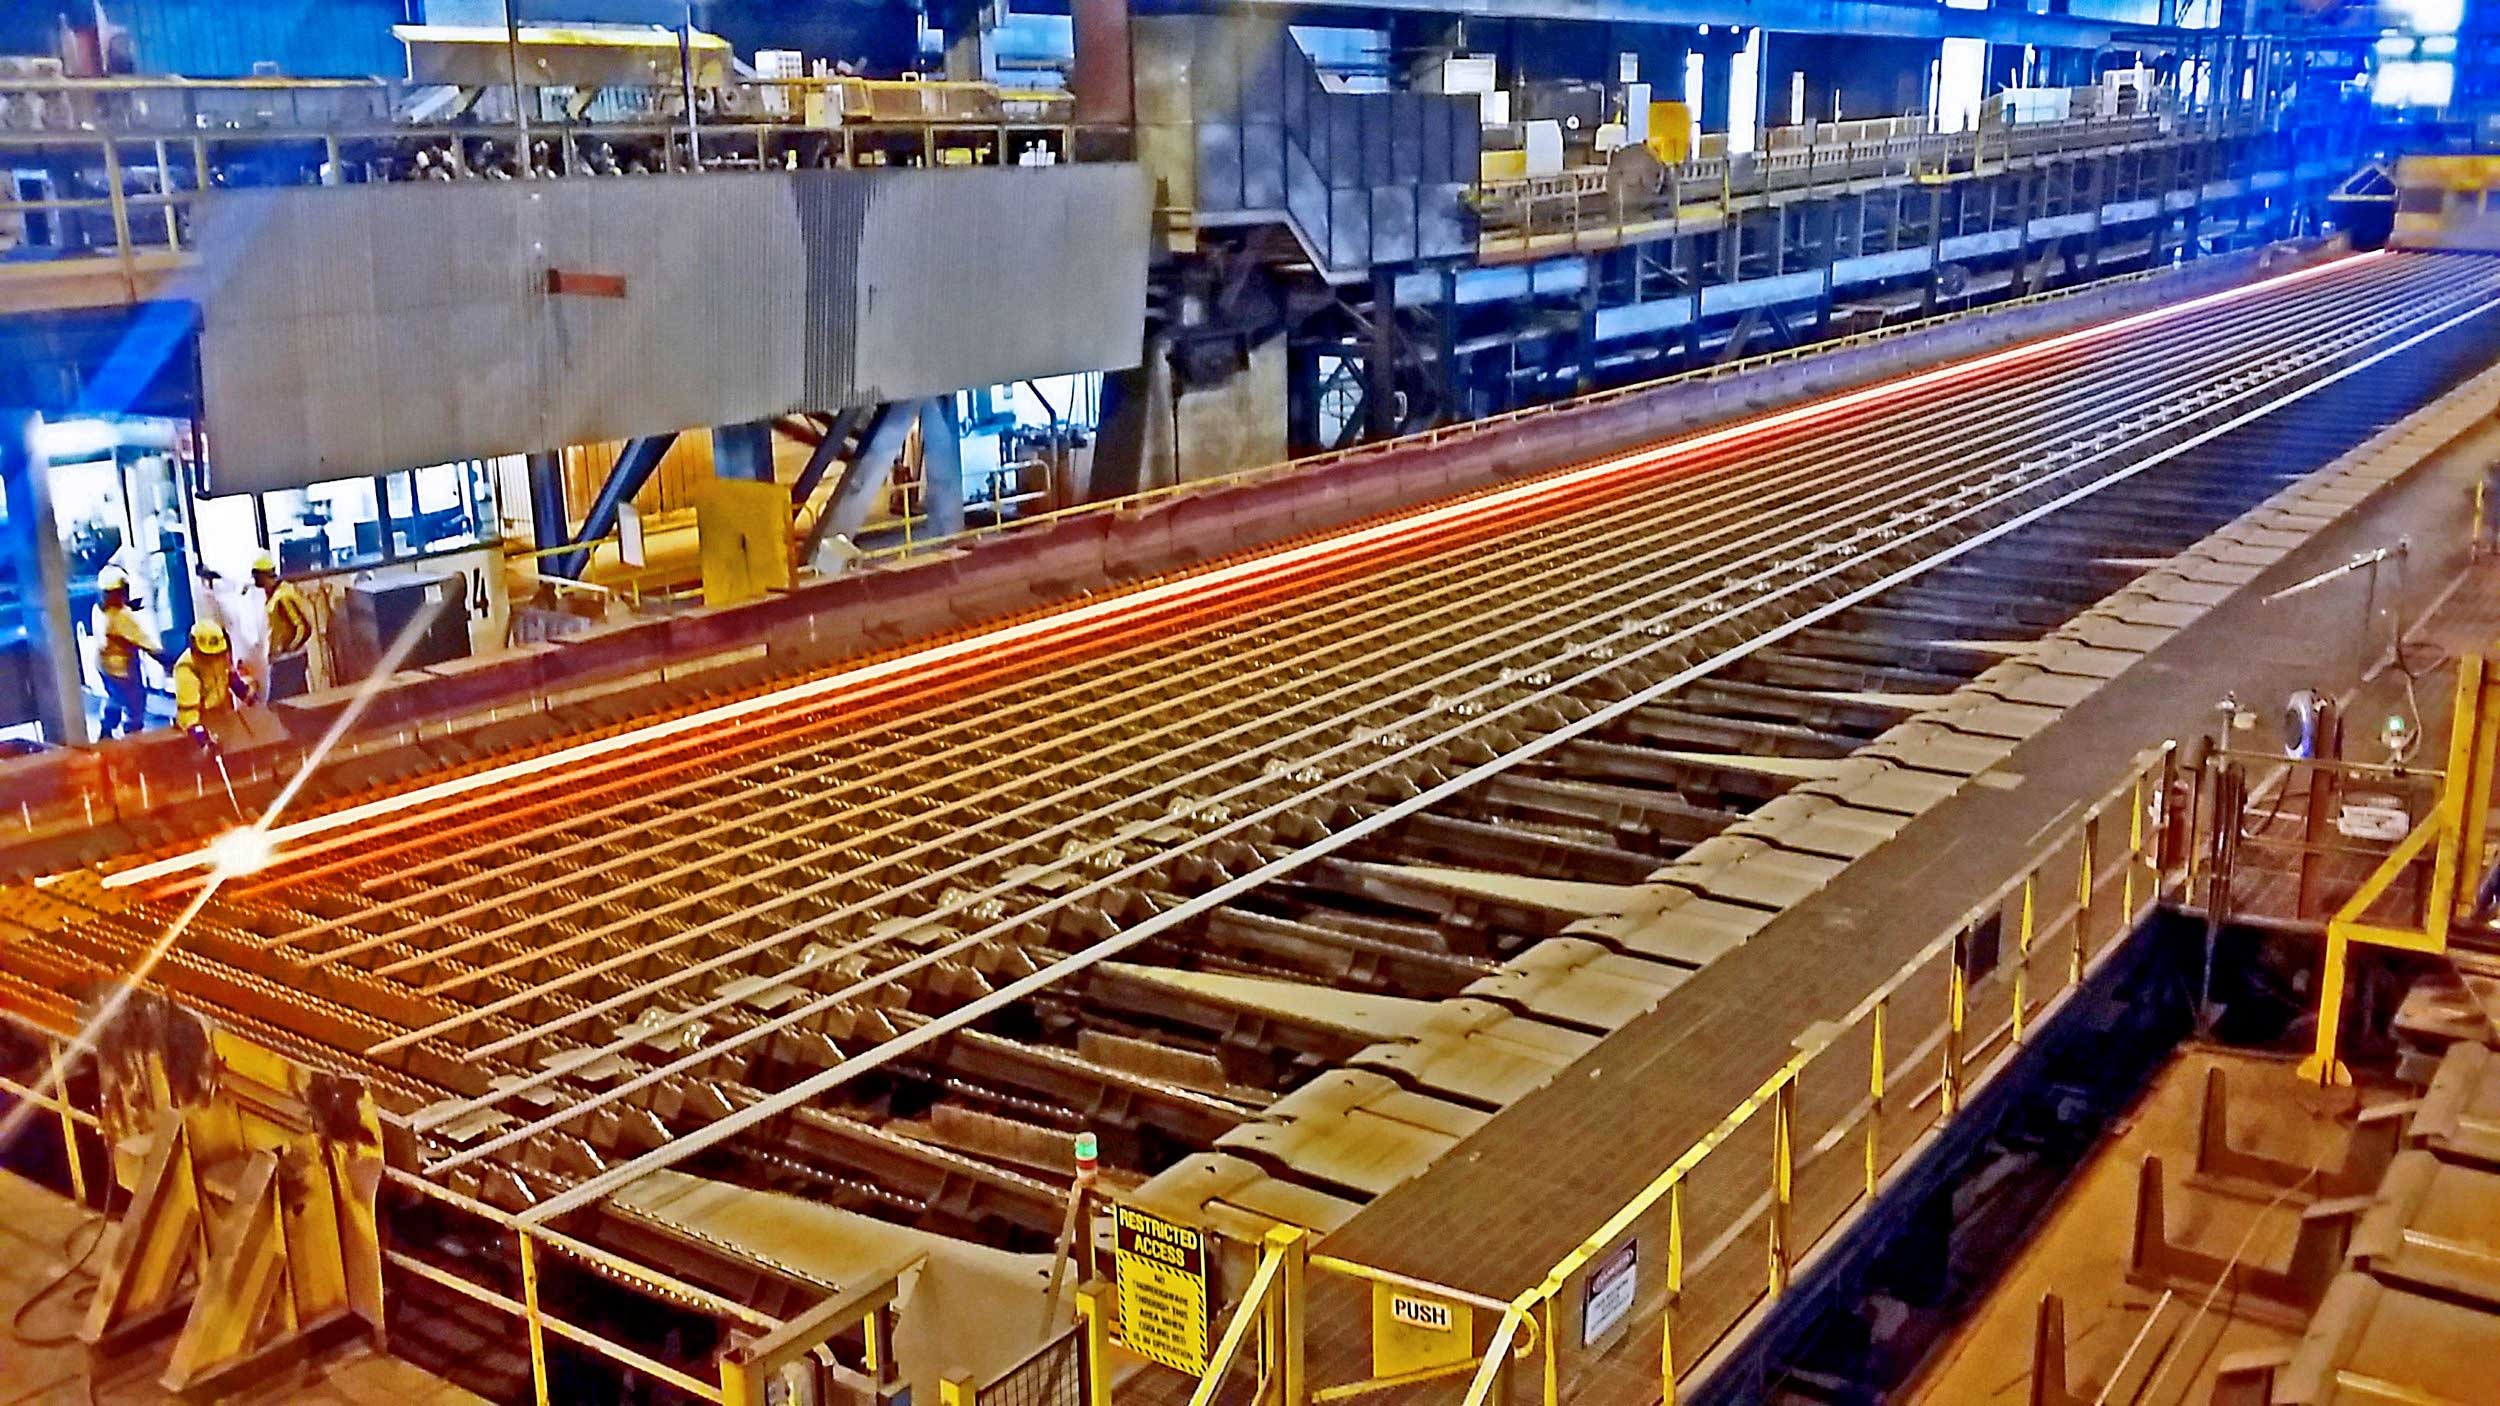 PRODUCTION: The bars being produced at Pacific Steel